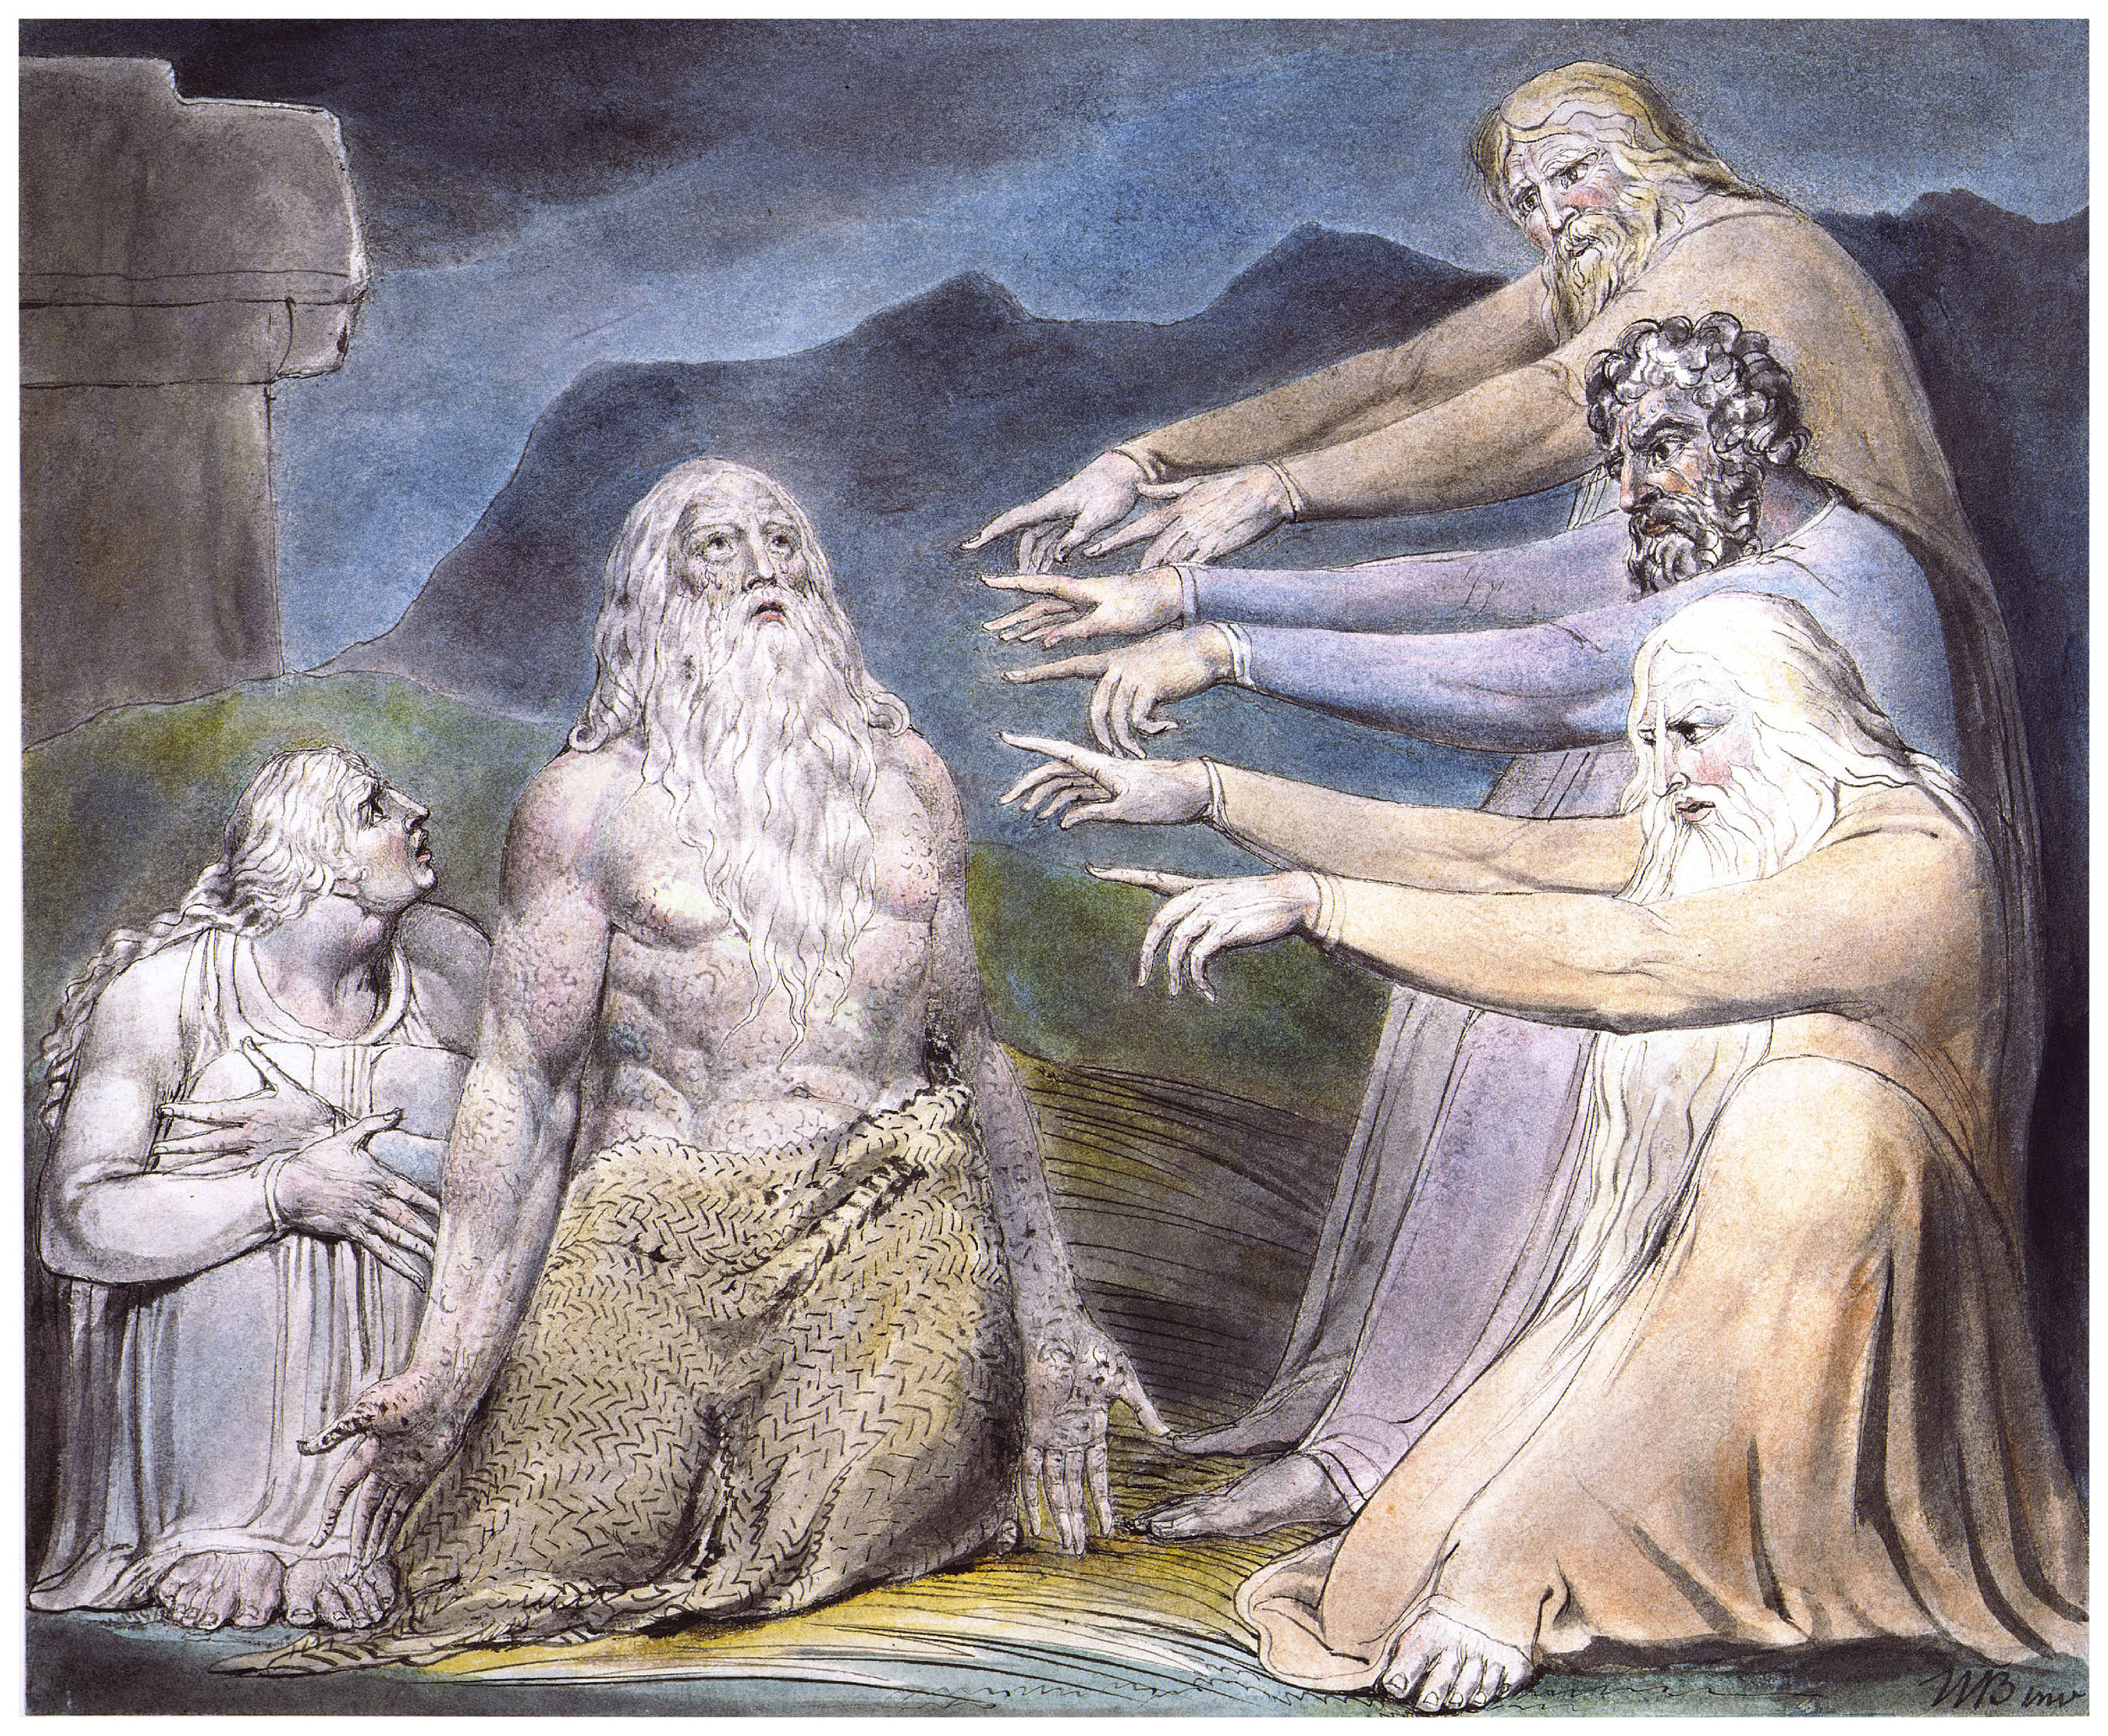 'Job Rebuked by his Friends', William Blake.